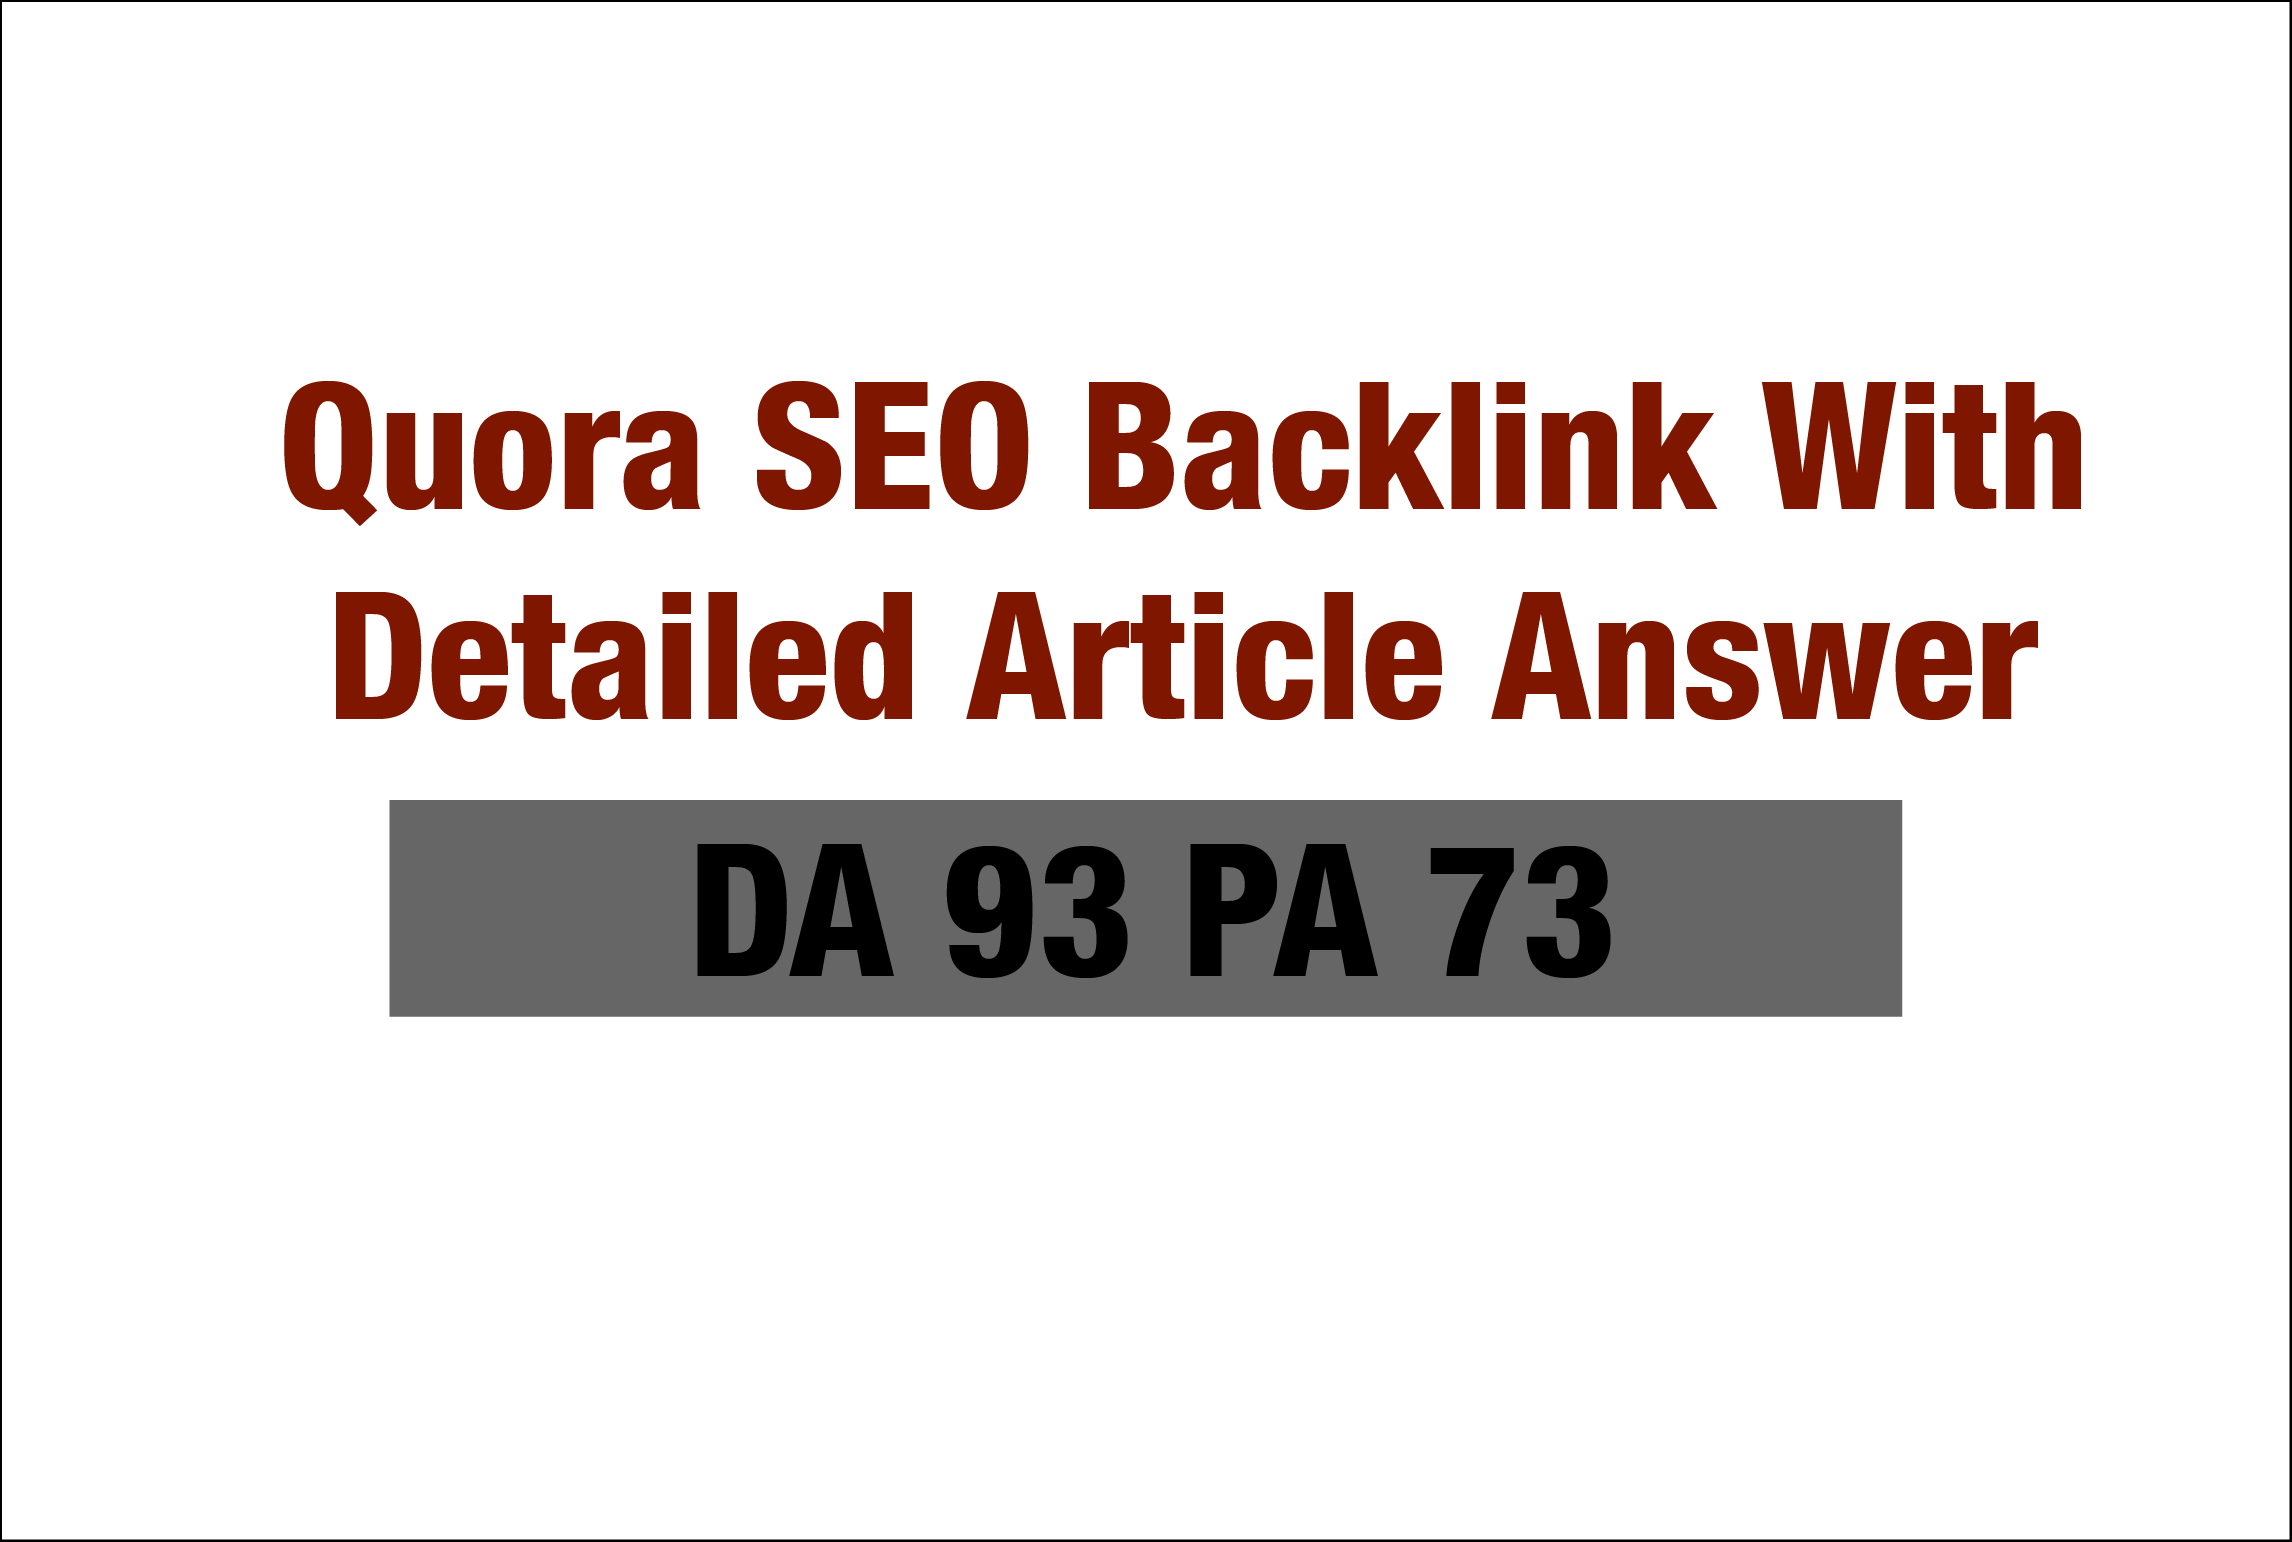 Quora Website SEO Back-link With Detailed Article Answer DA 93 PA 73